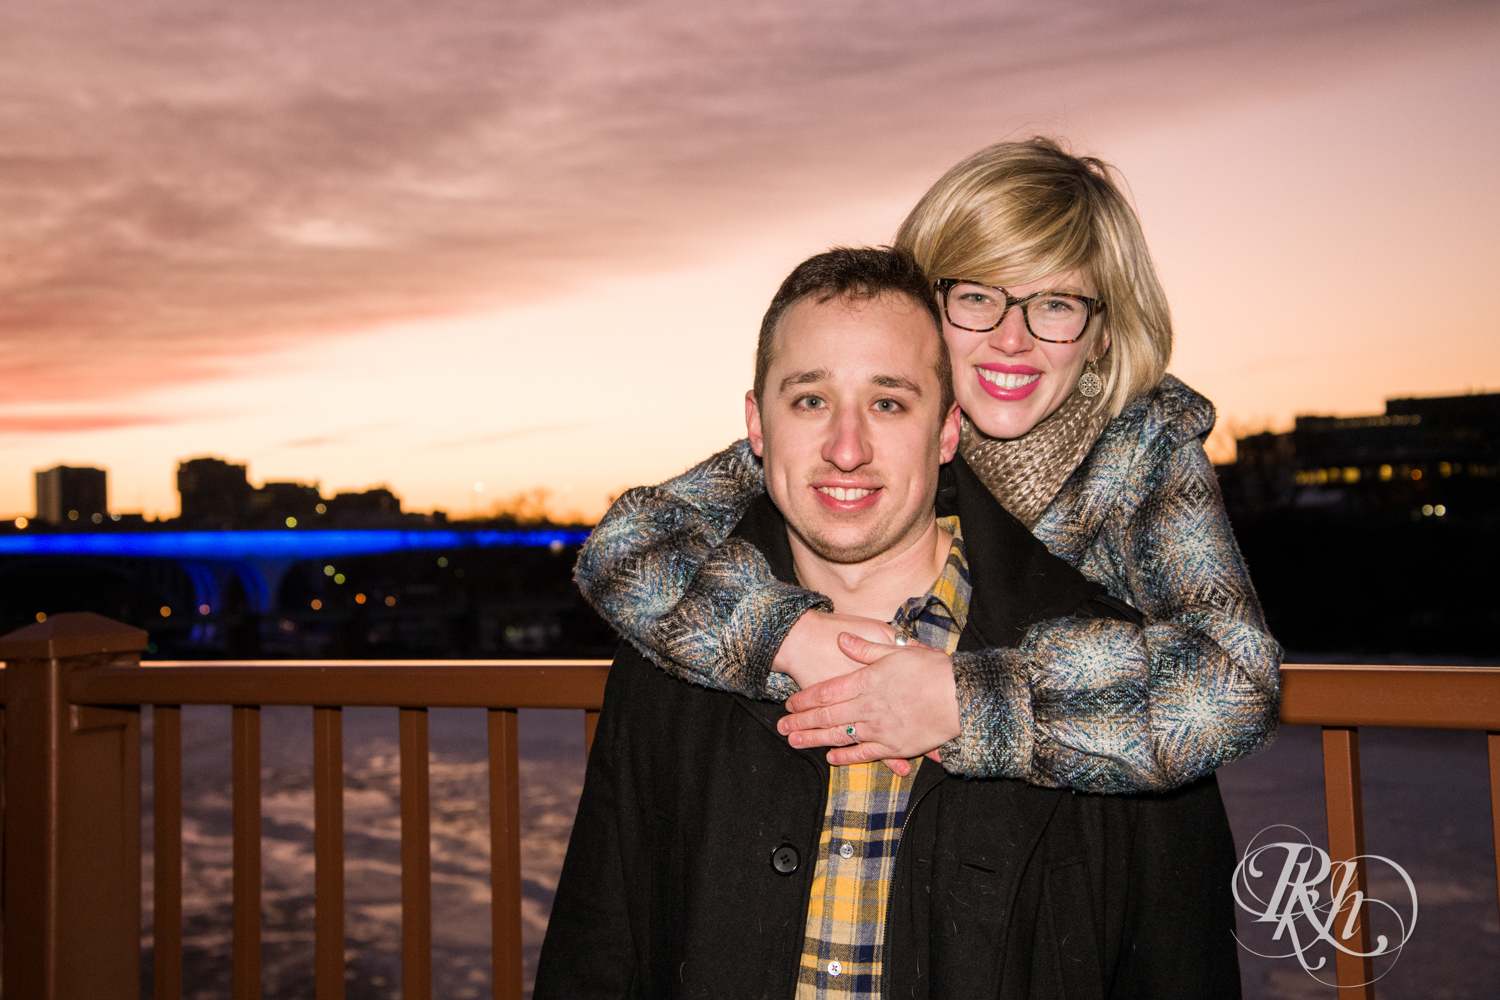 Kate & Kyle - Minnesota Sunrise Engagement Photography - Stone Arch Bridge - RKH Images (4 of 18).jpg